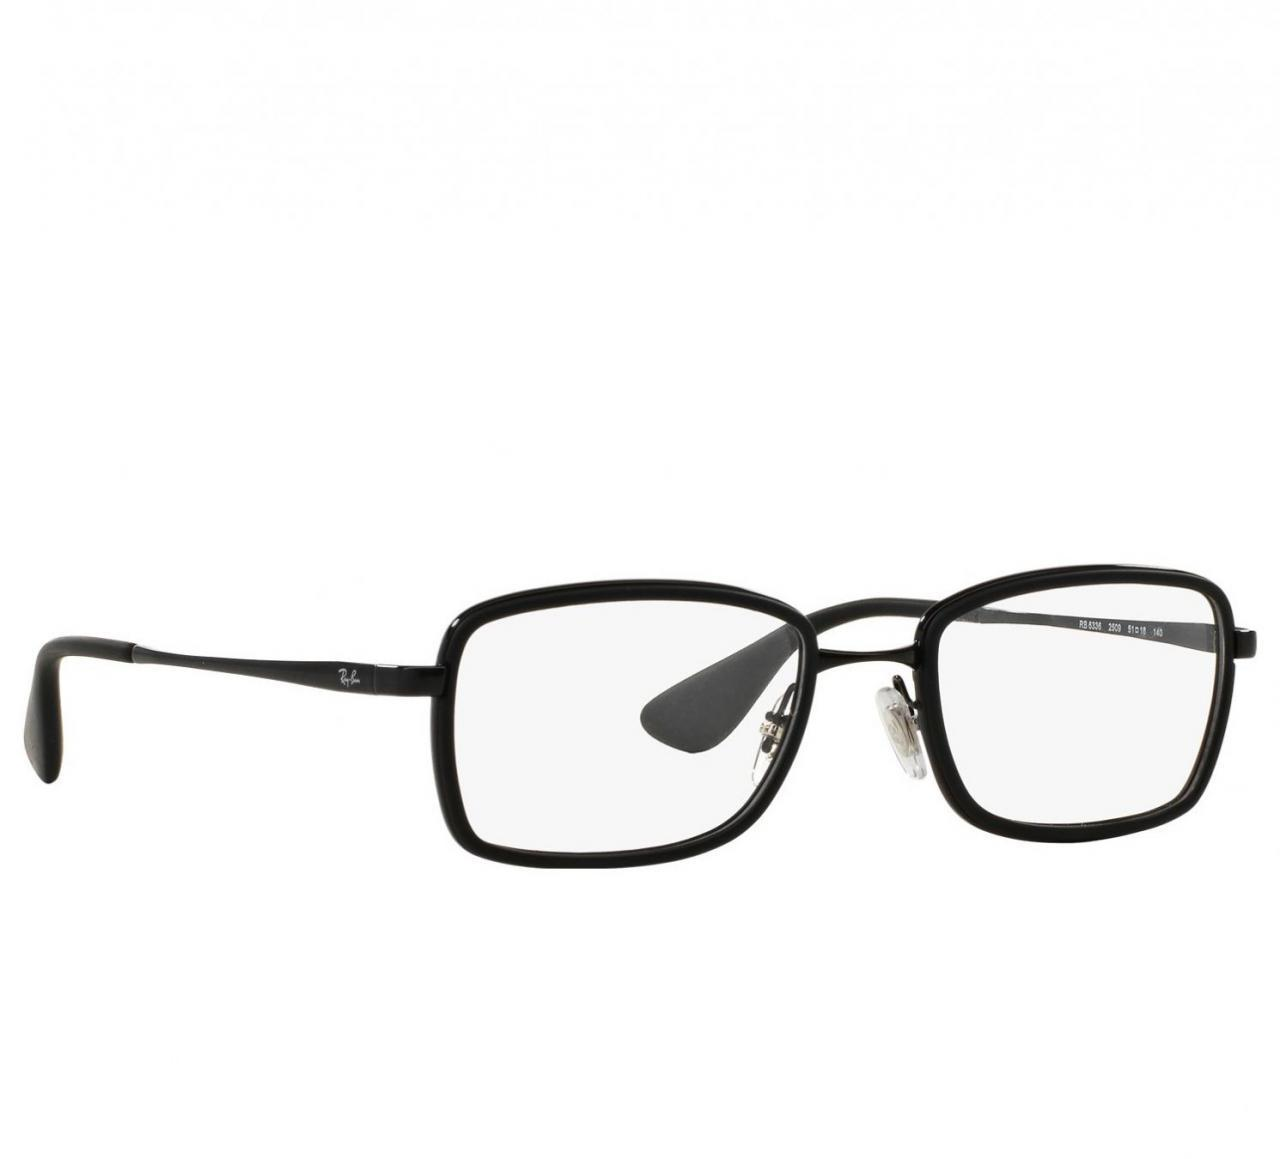 Ray Ban Eyeglasses RB6336 2509 Rx-ABLE